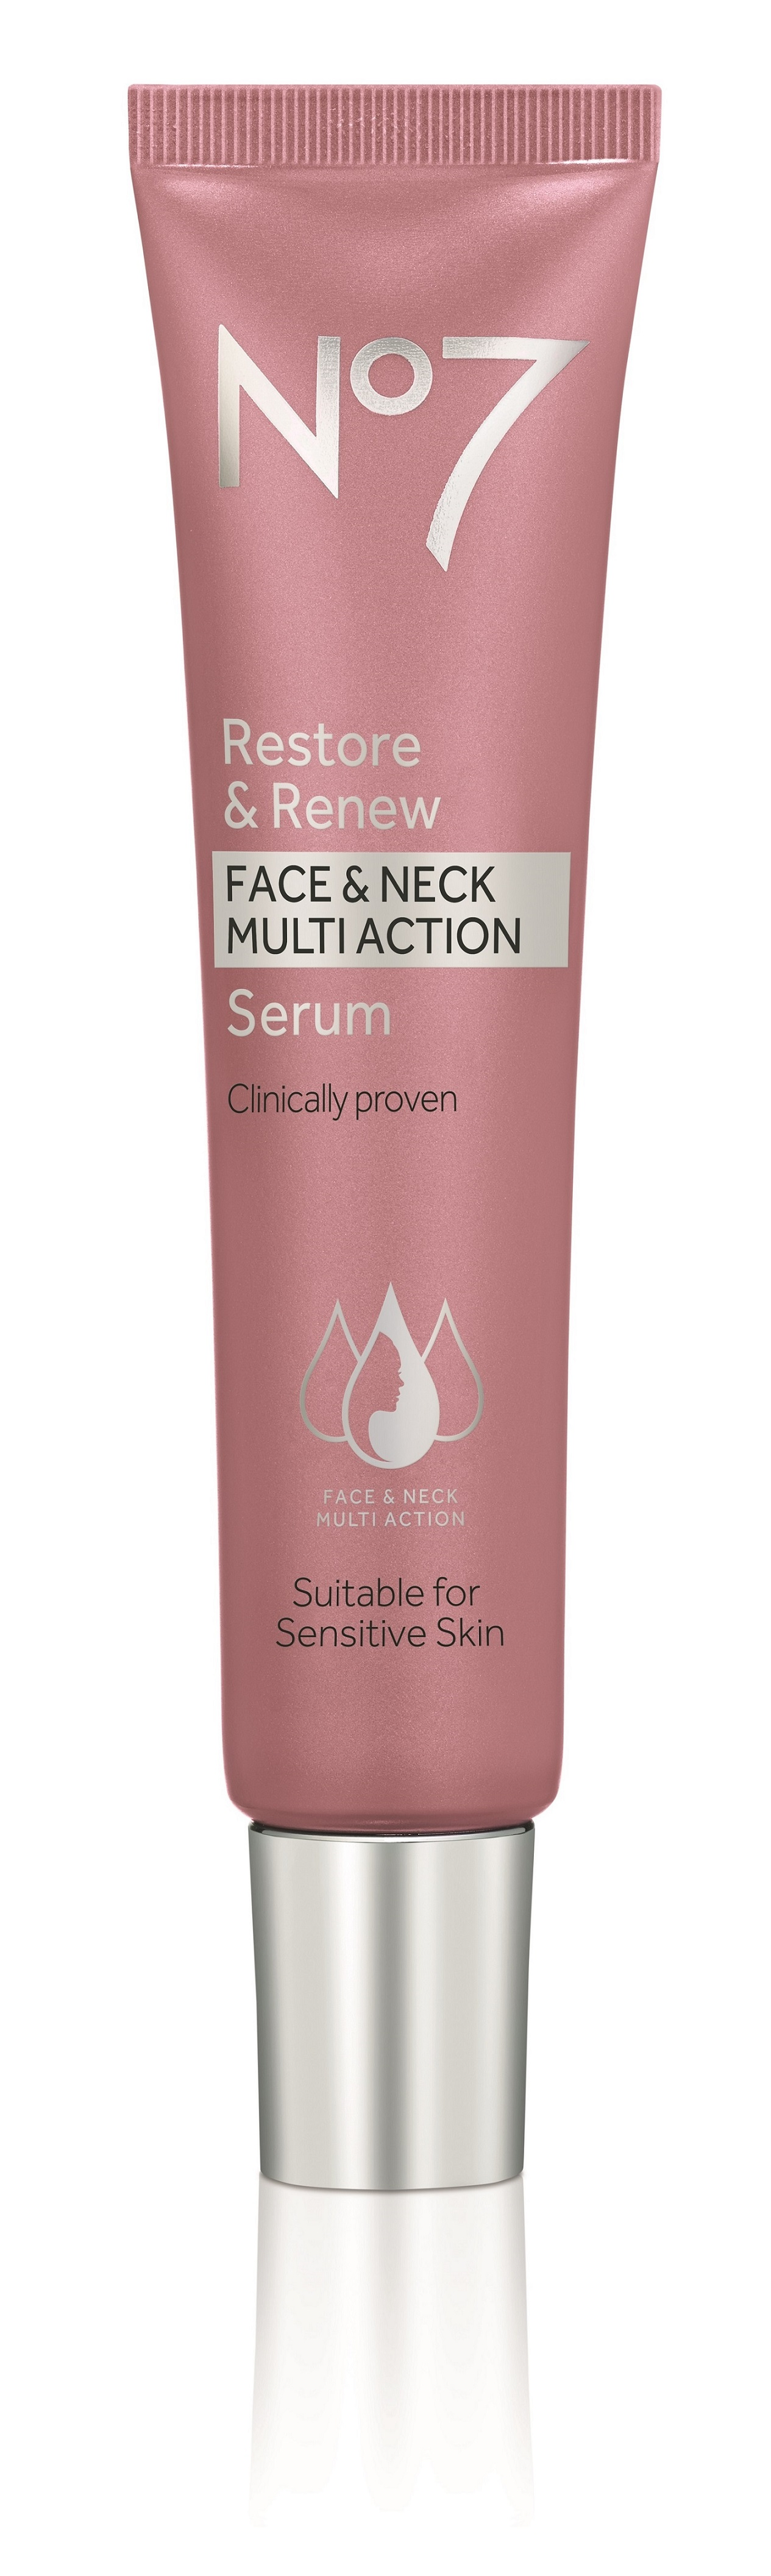 One of the best multitasking beauty products